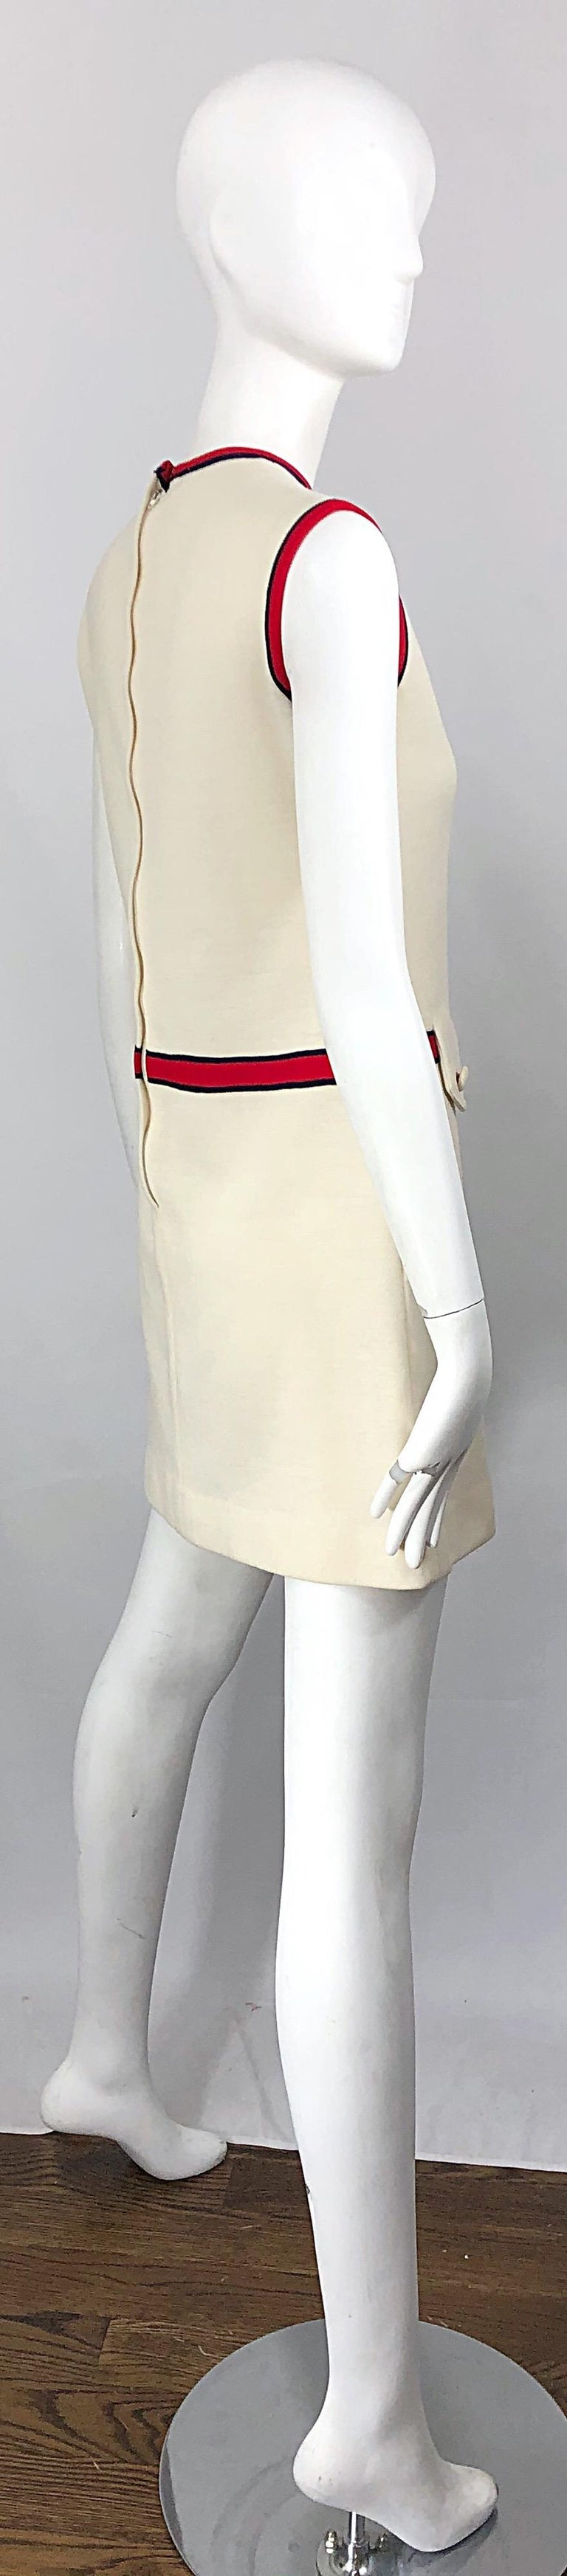 Chic 1960s Ivory + Navy Blue + Red Knit Vintage 60s Nautical Mod Shift Dress In Good Condition For Sale In Chicago, IL